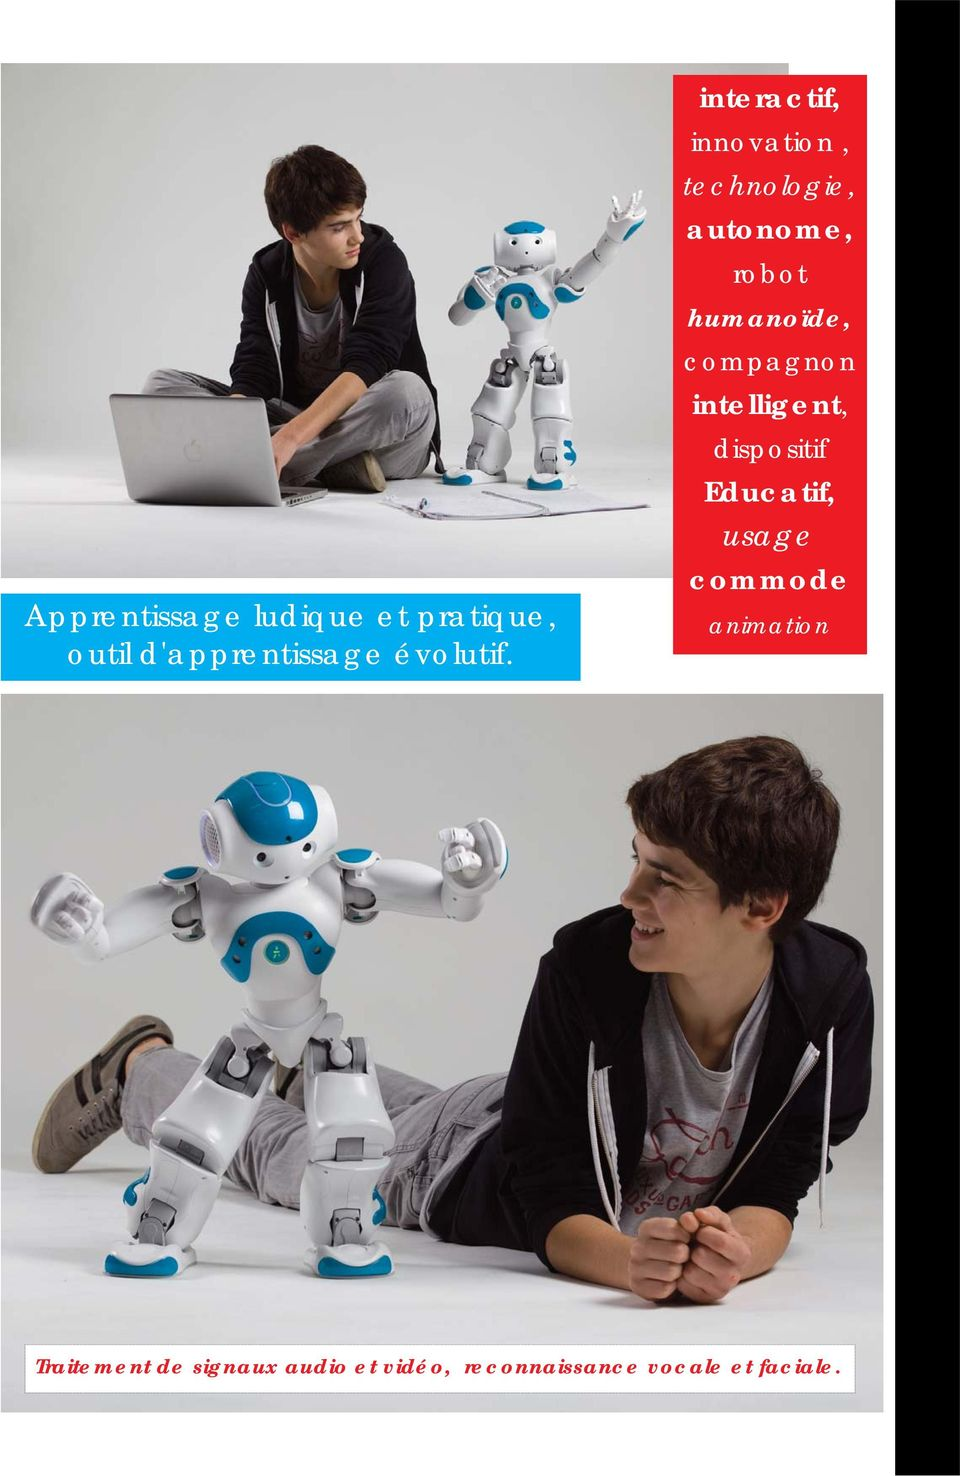 compagnon intelligent, dispositif Educatif, usage commode animation